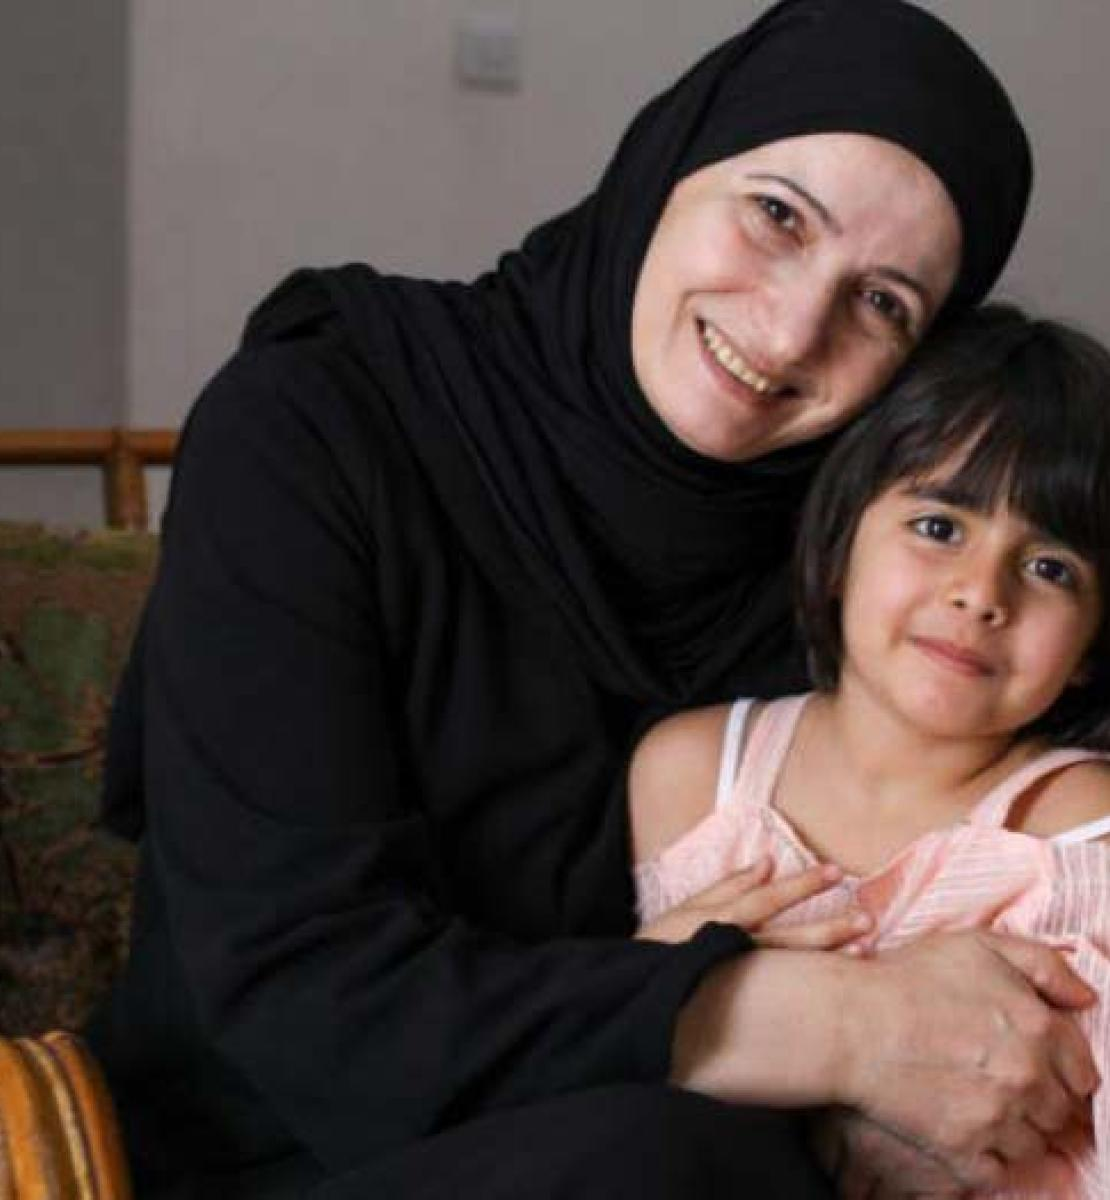 Ghada smiles cheerfully as the camera as she proudly embraces her youngest daughter, who is also smiling at the camera.